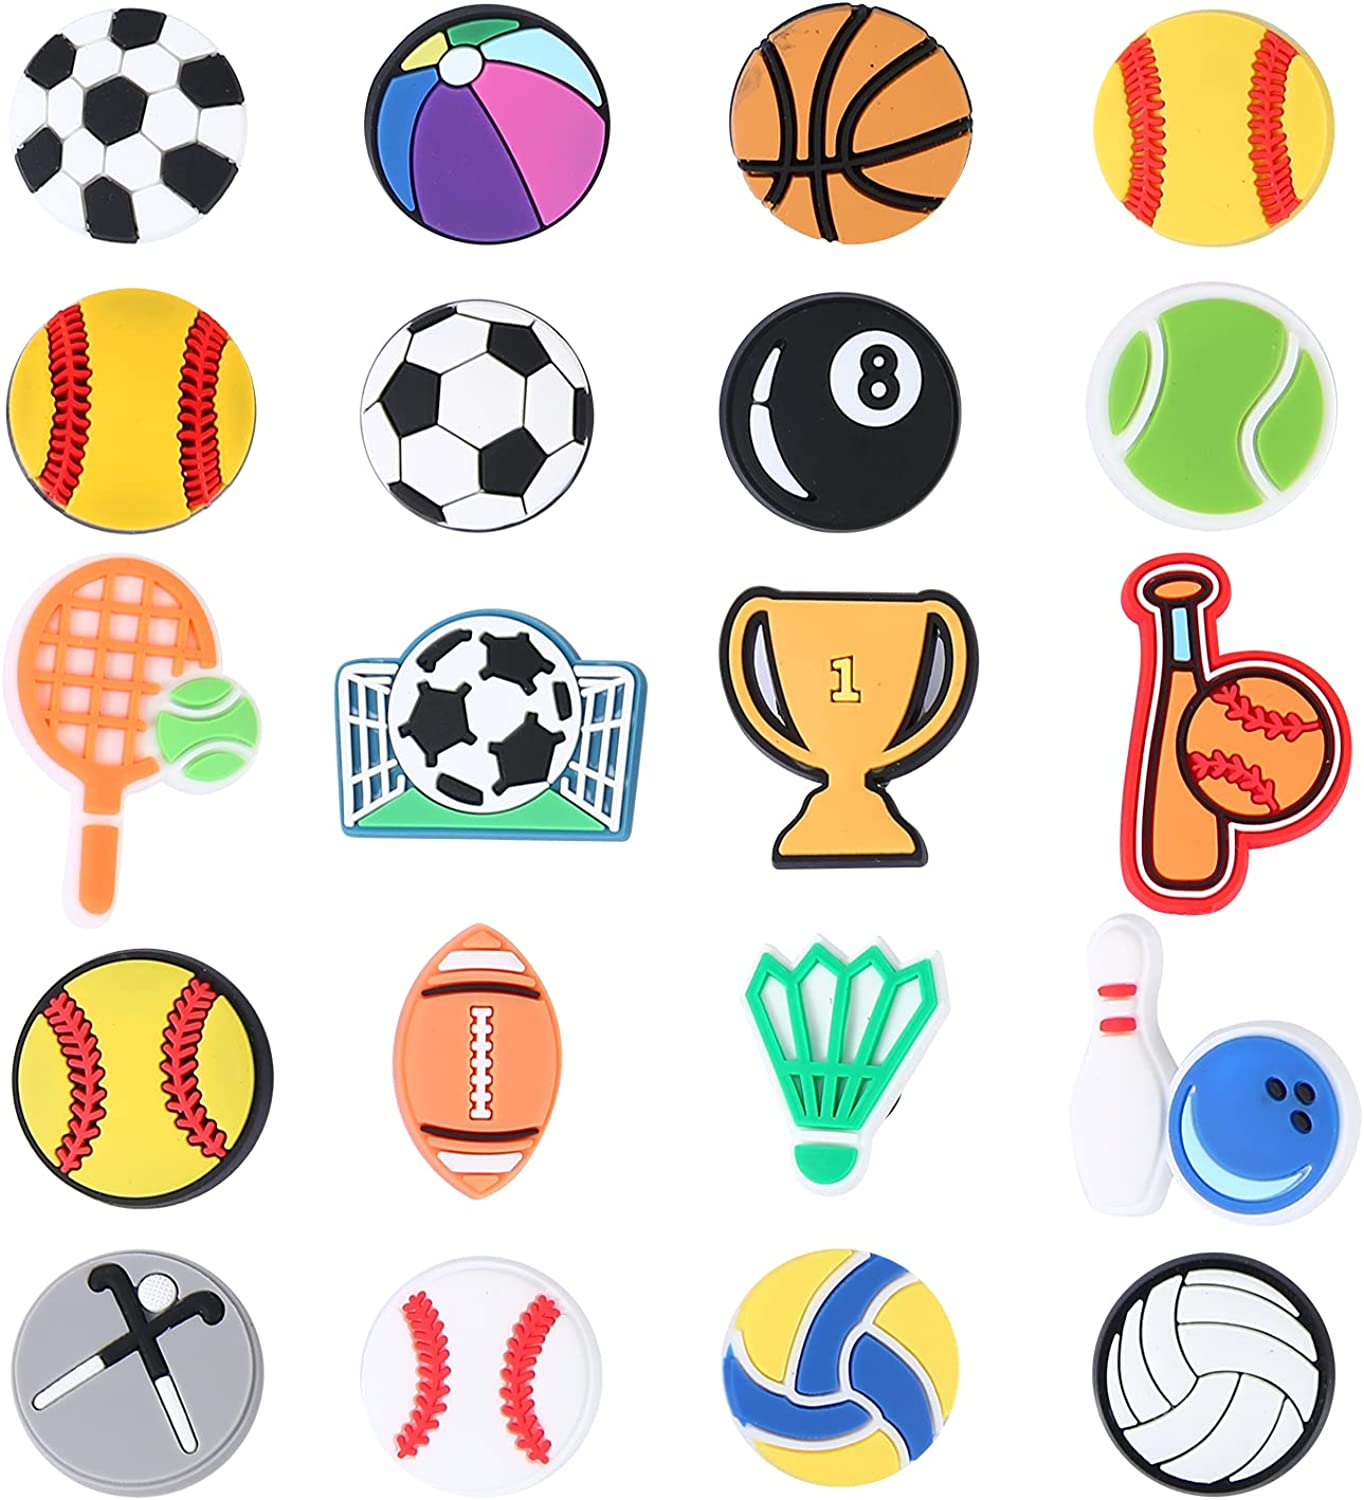 Crocs Charms for Men Women Boys Fans Football Challenge the Special price for a limited time lowest price of Japan and Basketball Sp